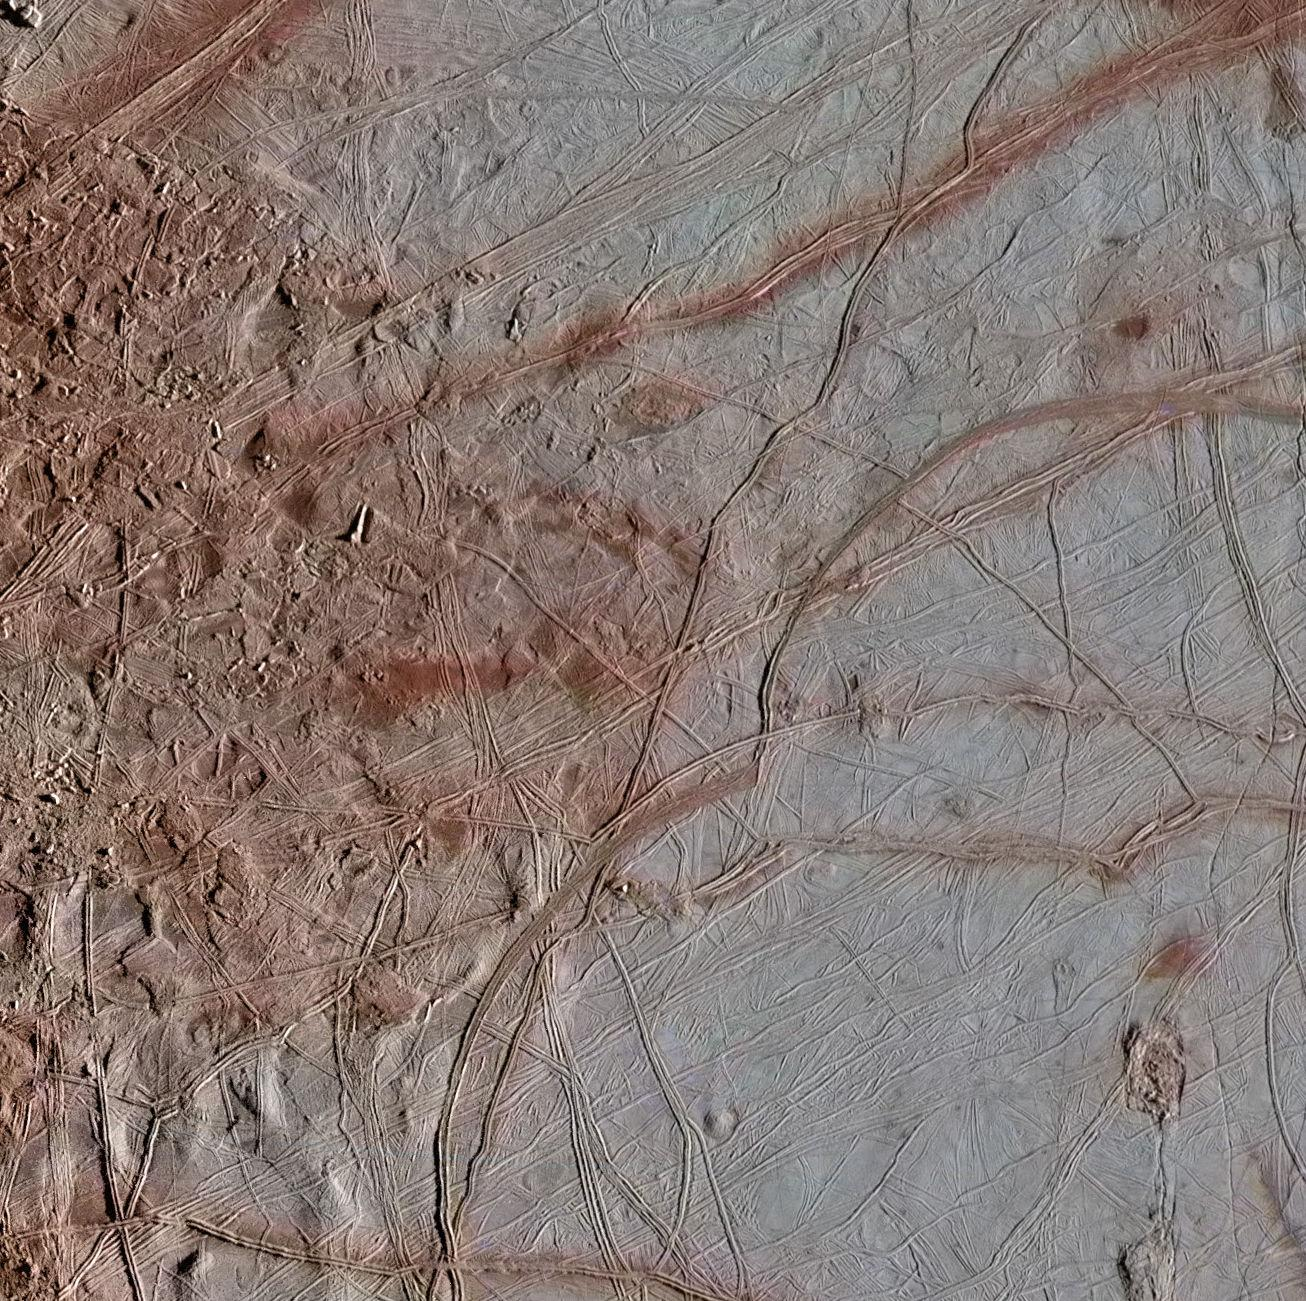 This newly reprocessed image of Jupiters moon Europa, taken by NASAs Galileo spacecraft on Sept. 26, 1998, reveals details of diverse surface features.